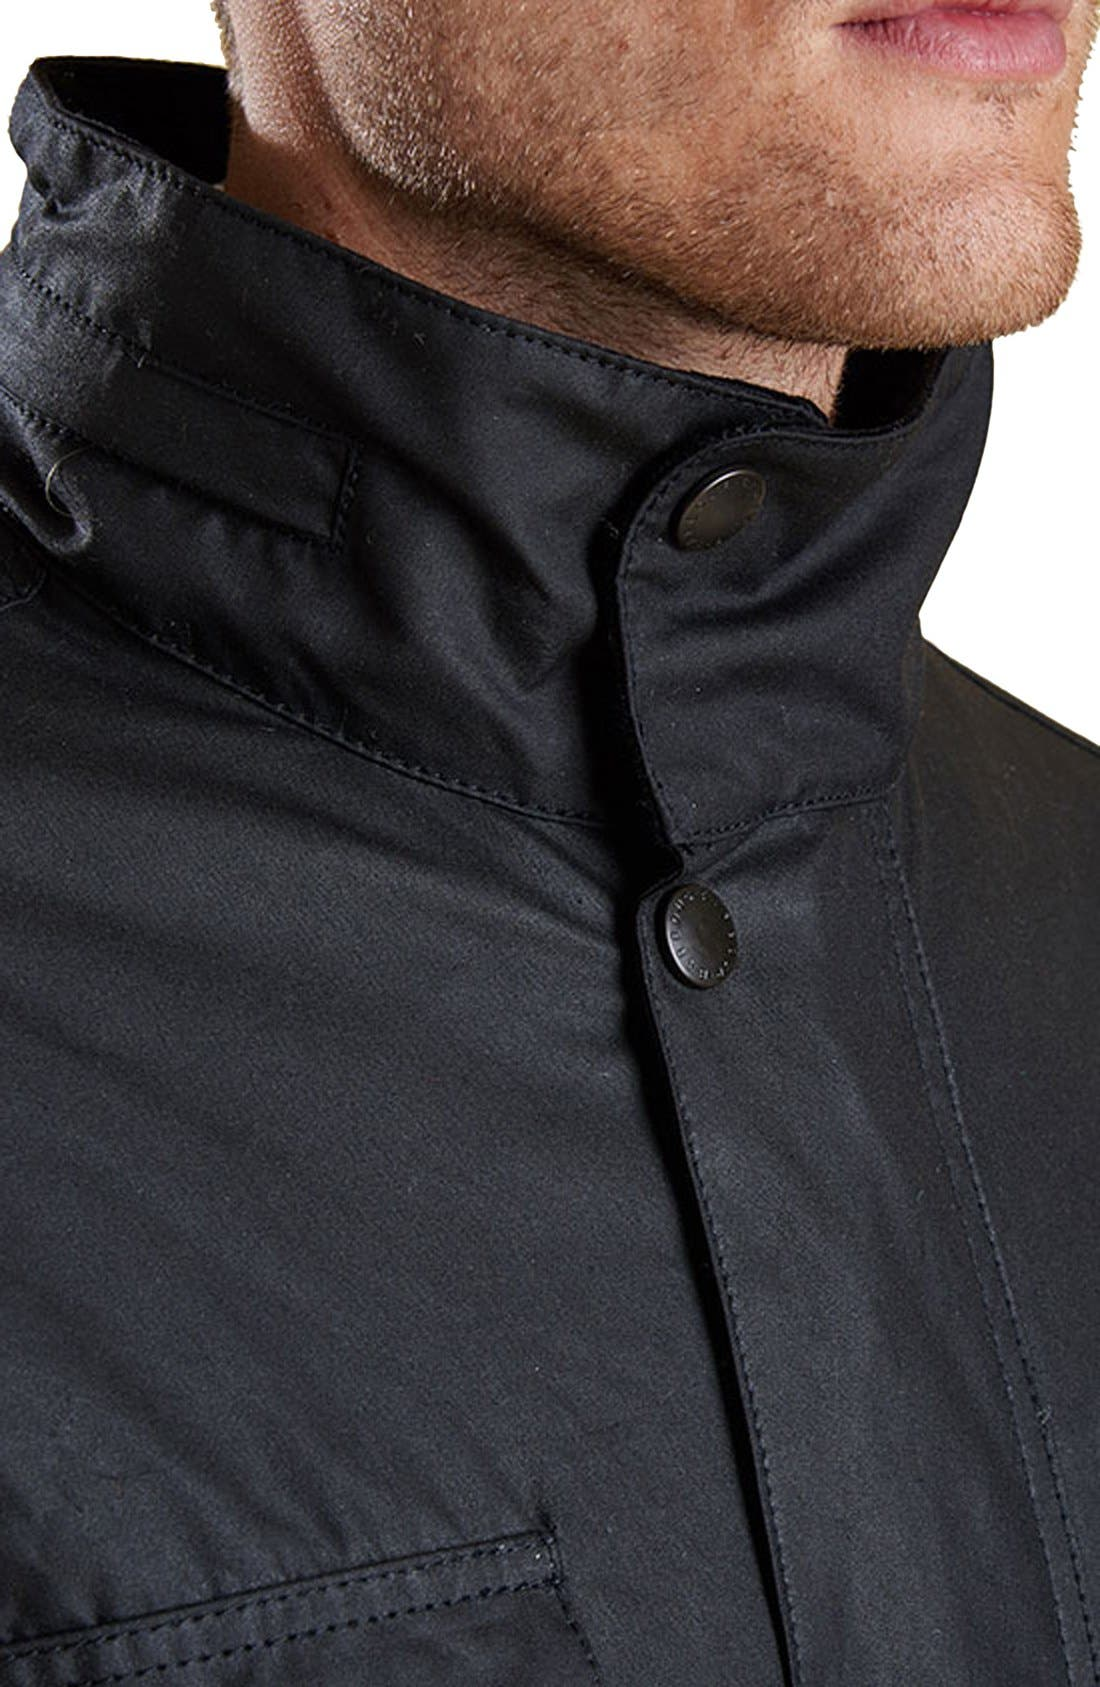 Alternate Image 3  - Barbour 'Sapper' Weatherproof Waxed Relaxed Fit Jacket